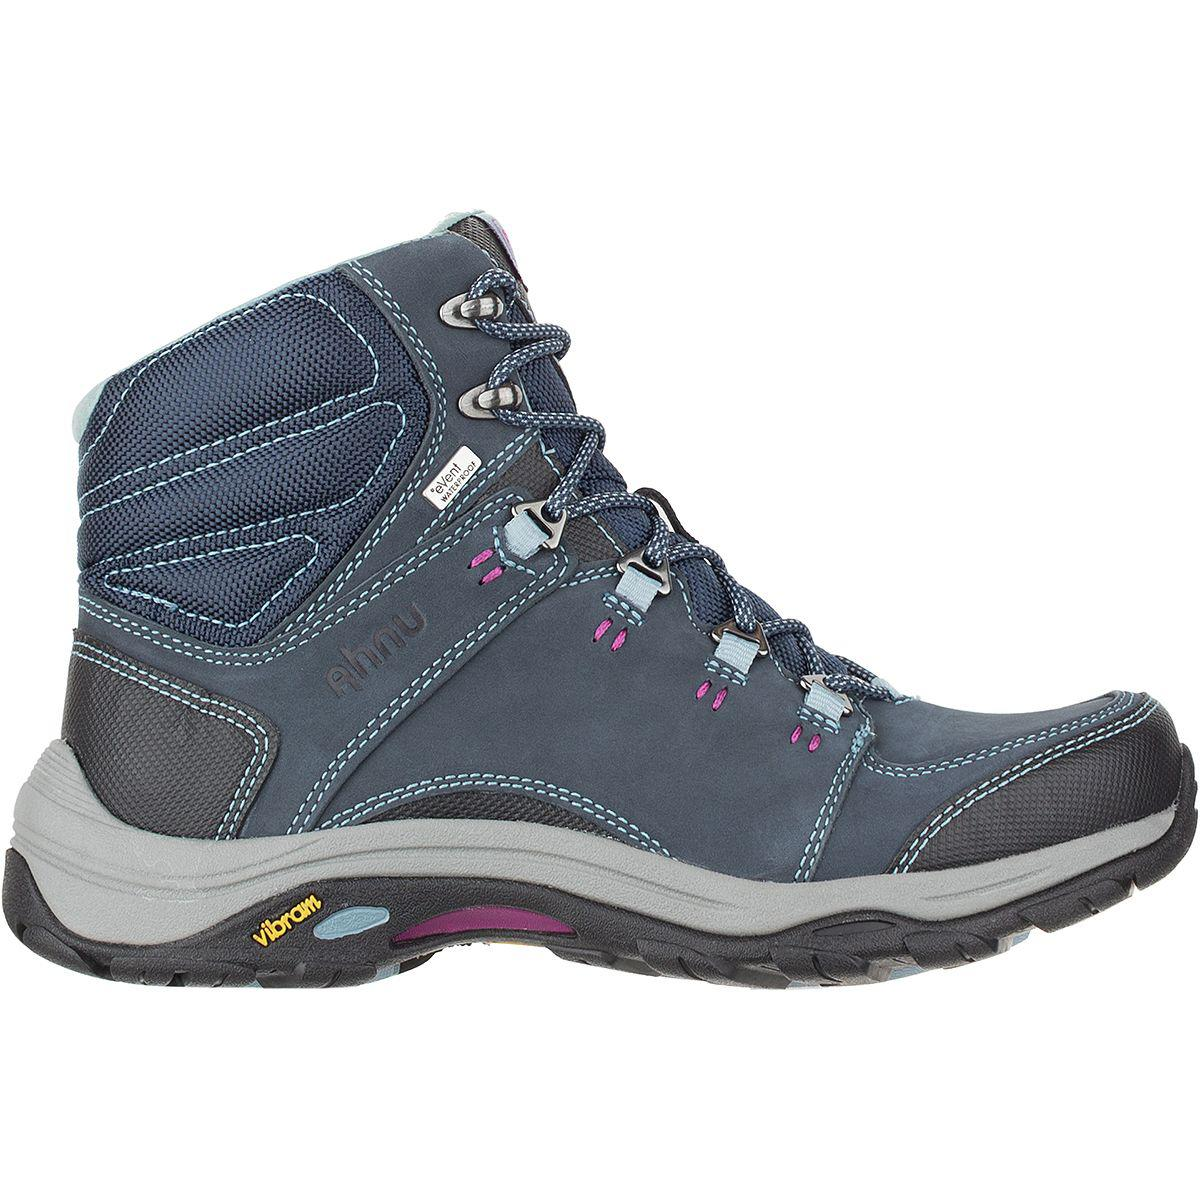 bbf7a595e69 Lyst - Ahnu Montara Iii Event Hiking Boot in Blue for Men